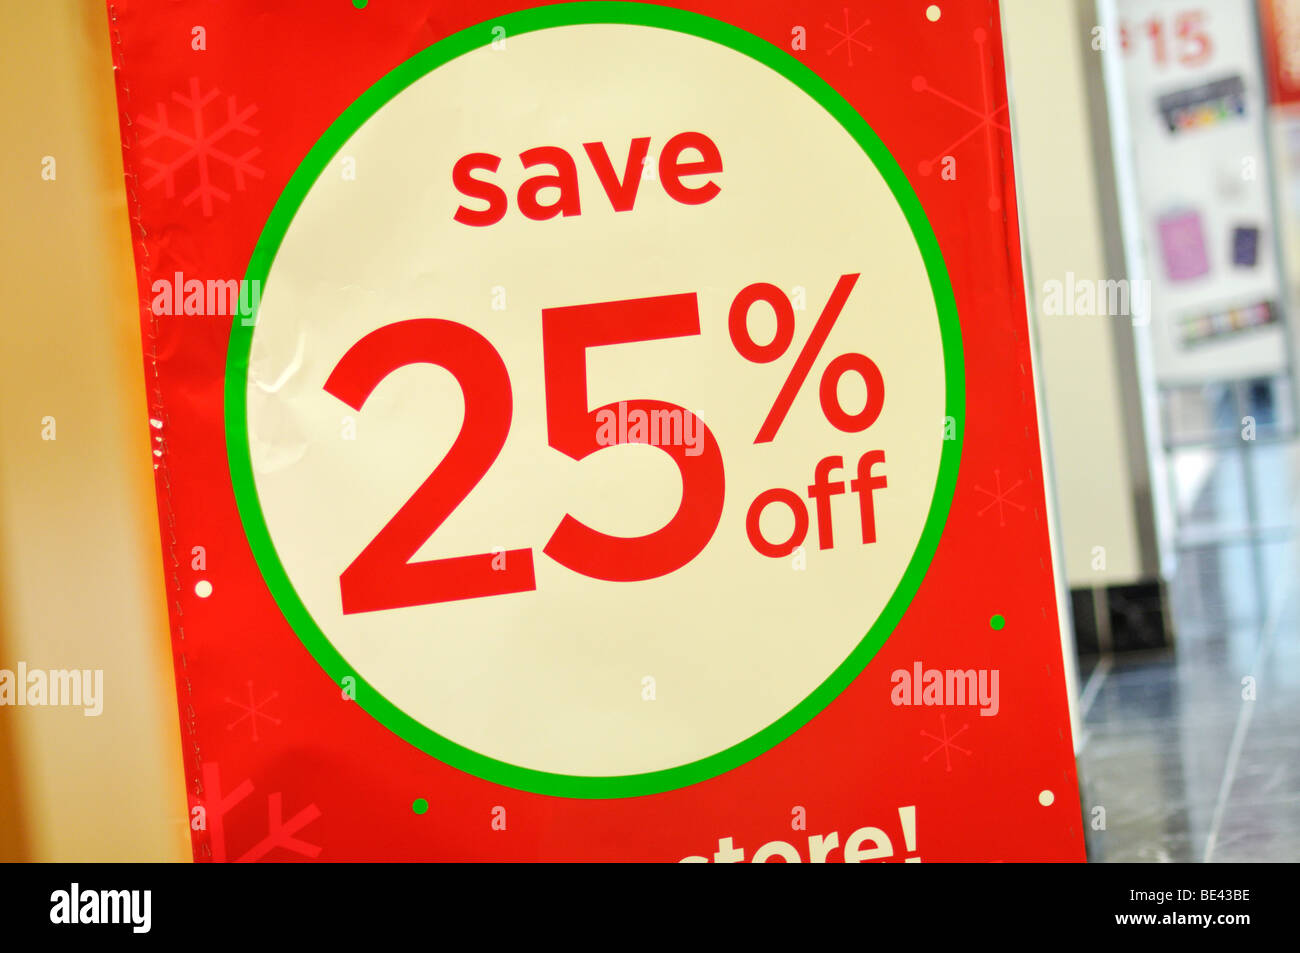 Save 25% off sign - Stock Image